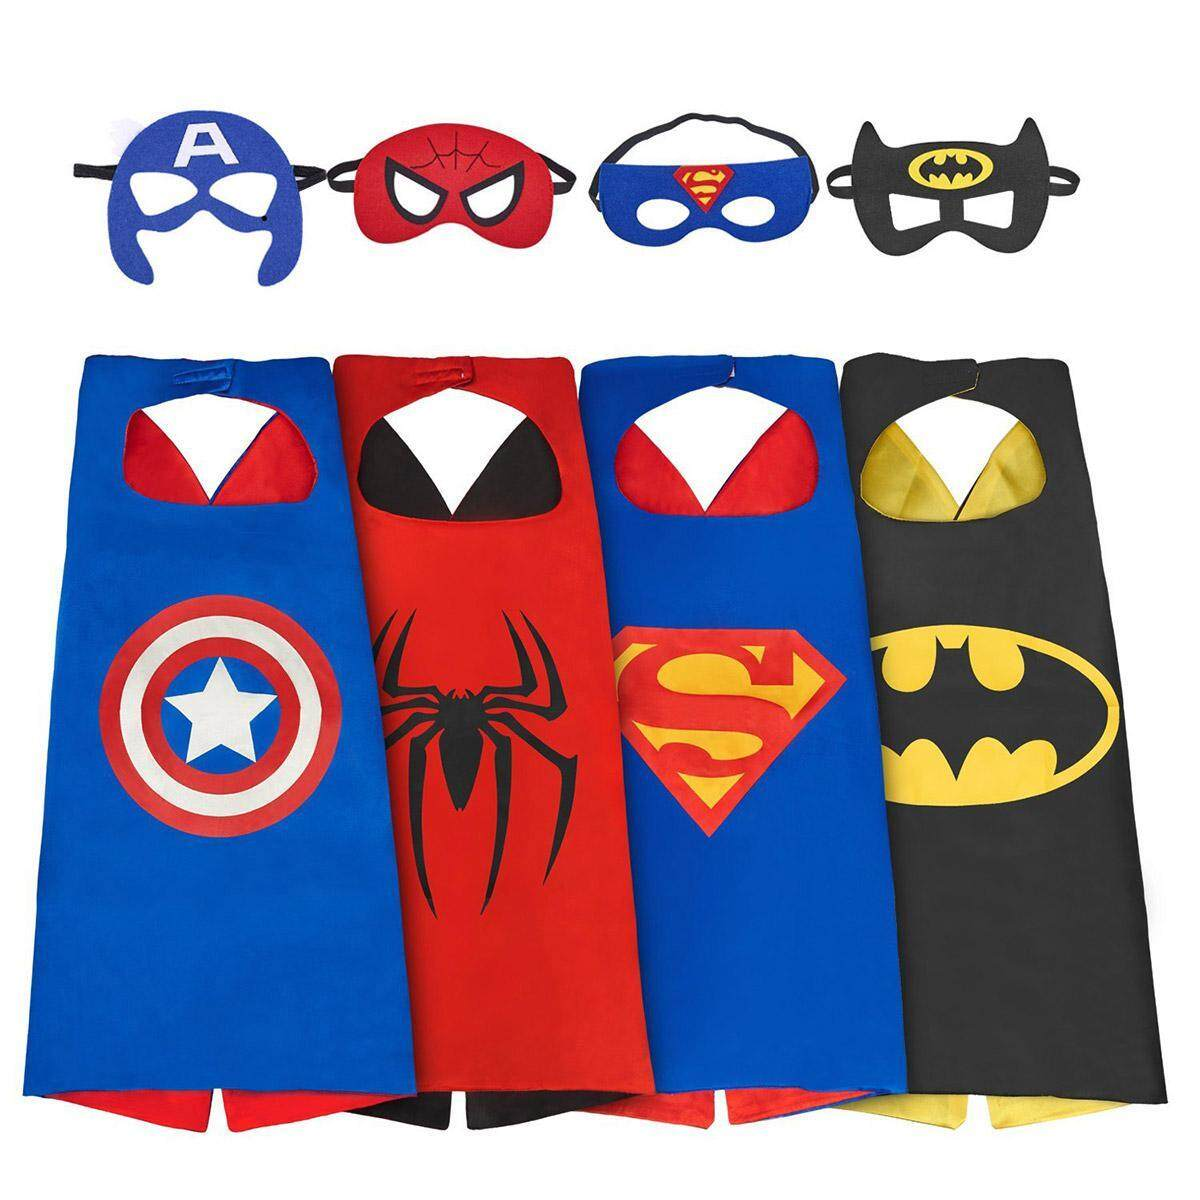 Character Costumes For The Best Prices In Malaysia Pj Mask Topeng Masks Kobwa Superhero Costume Cos Play Boys 4 Sets Dress Up